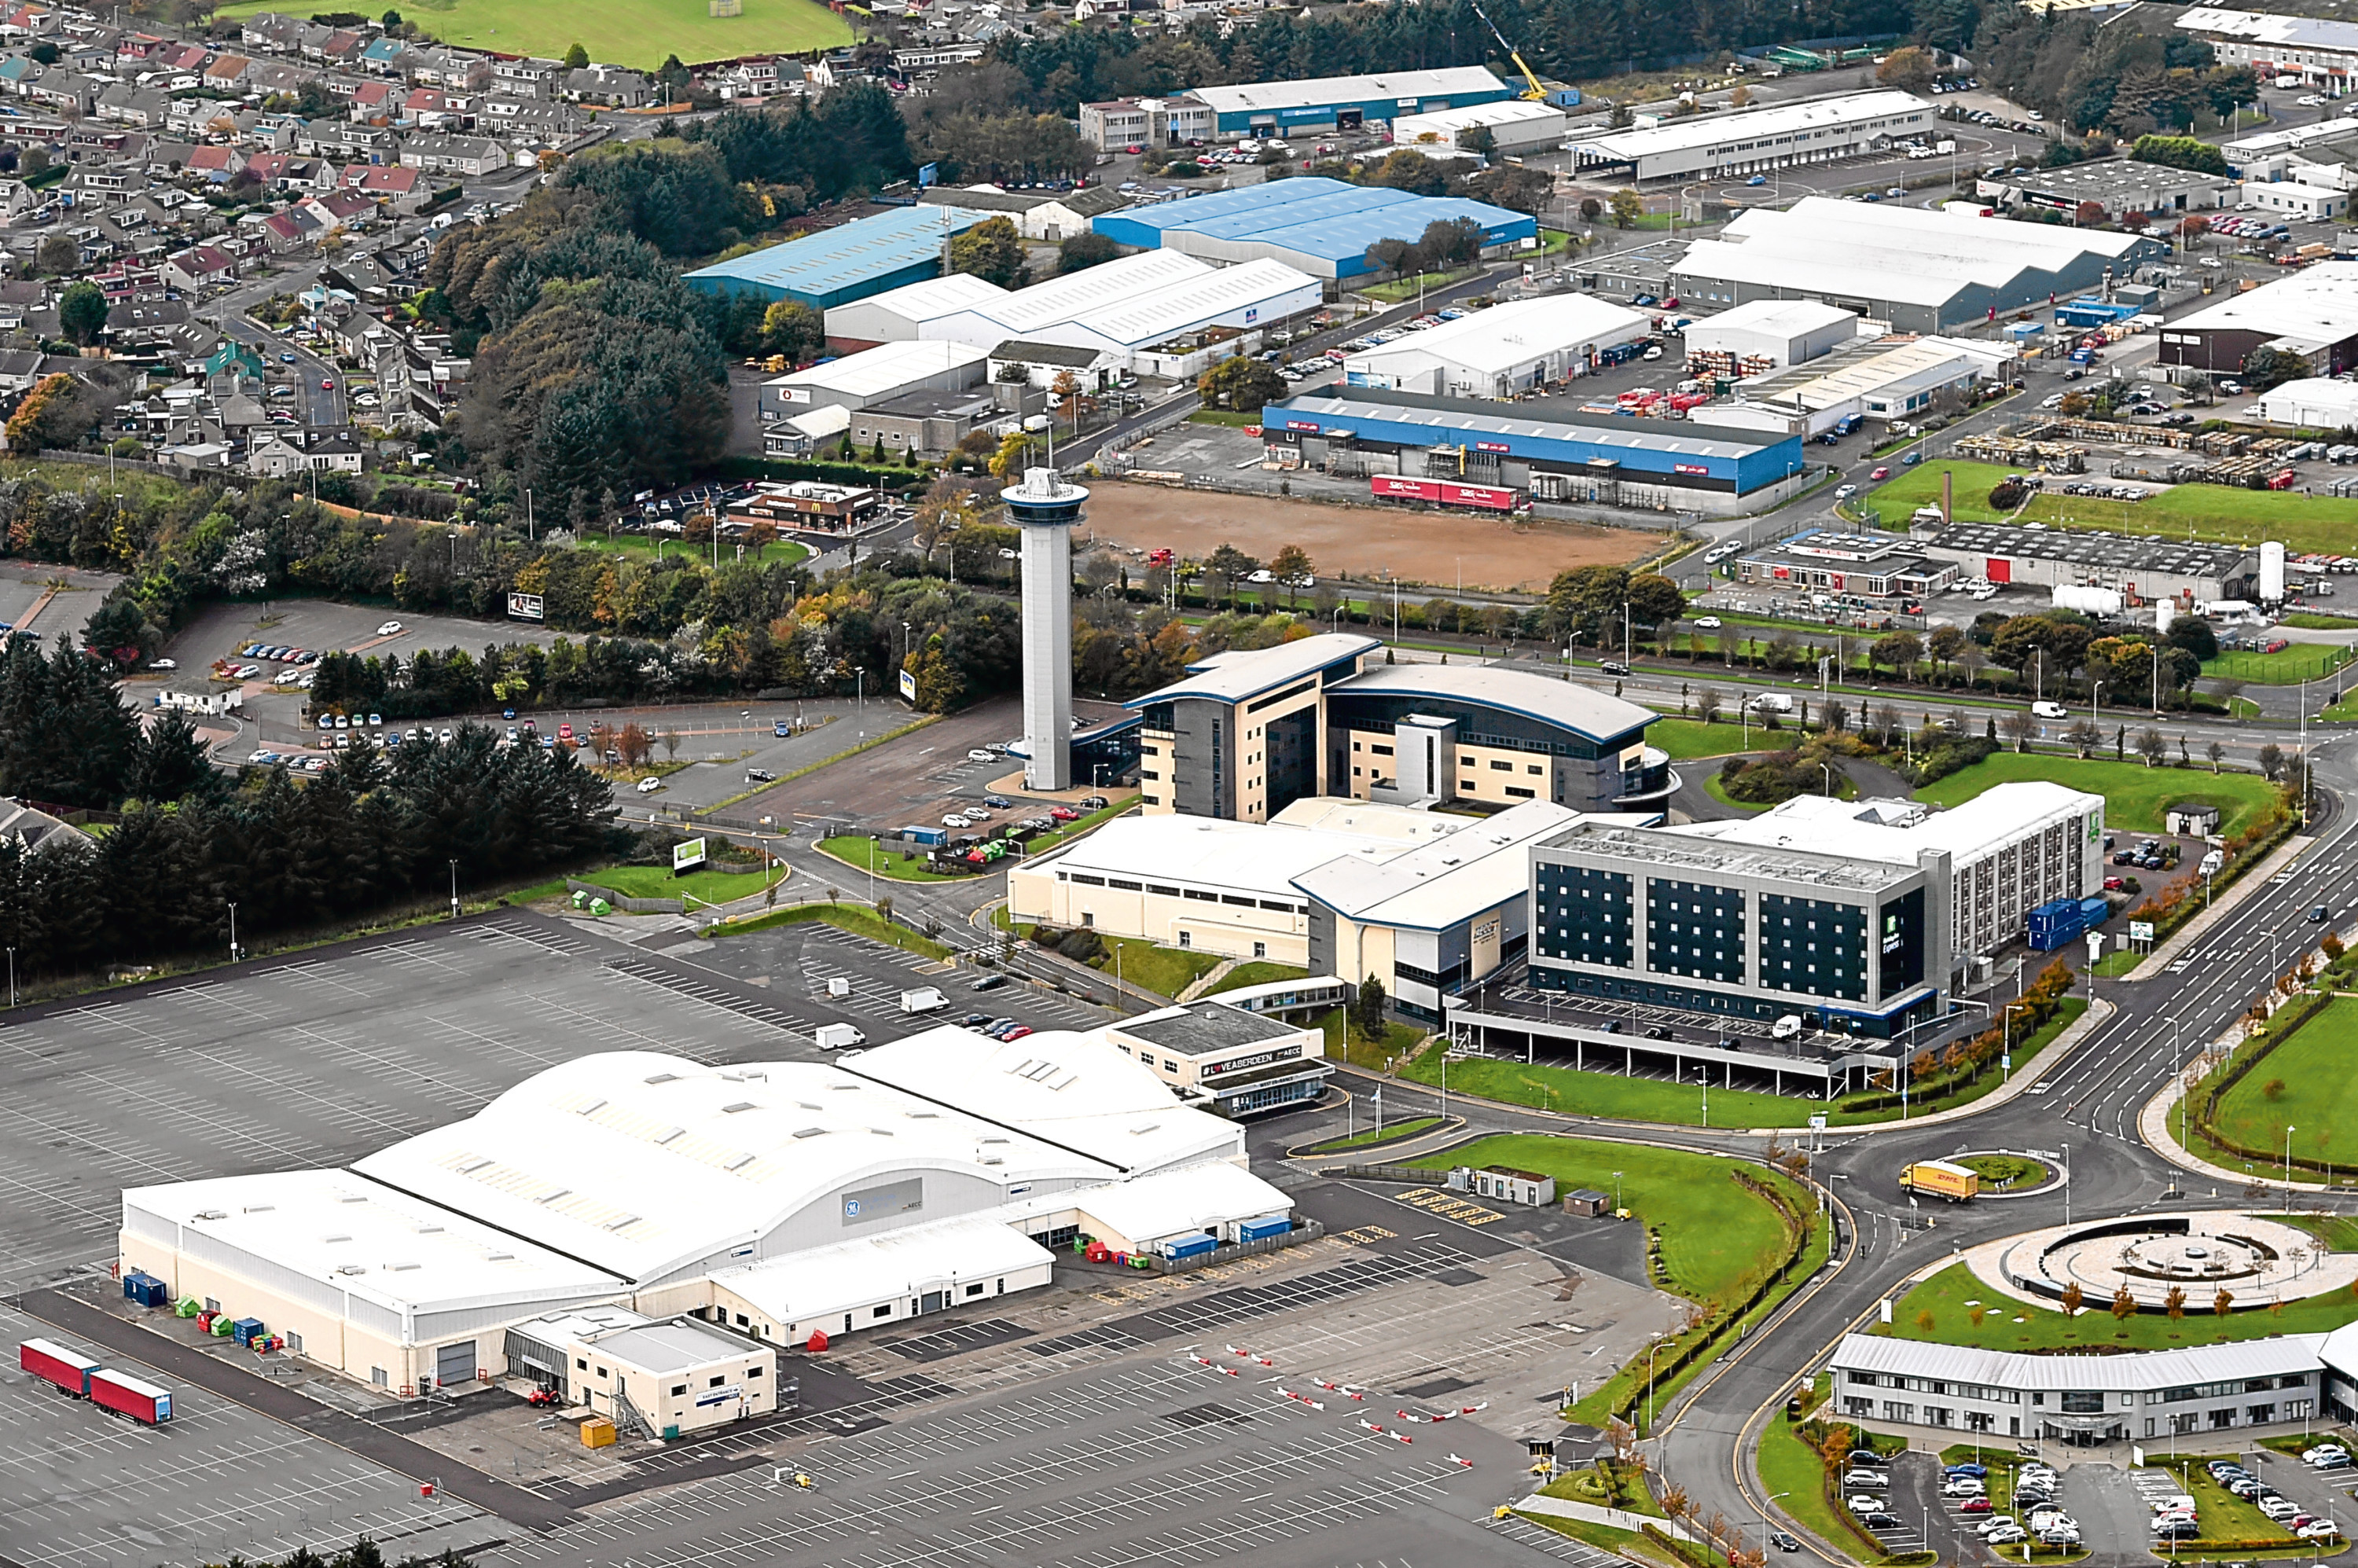 Aberdeen Exhibition and Conference Centre.